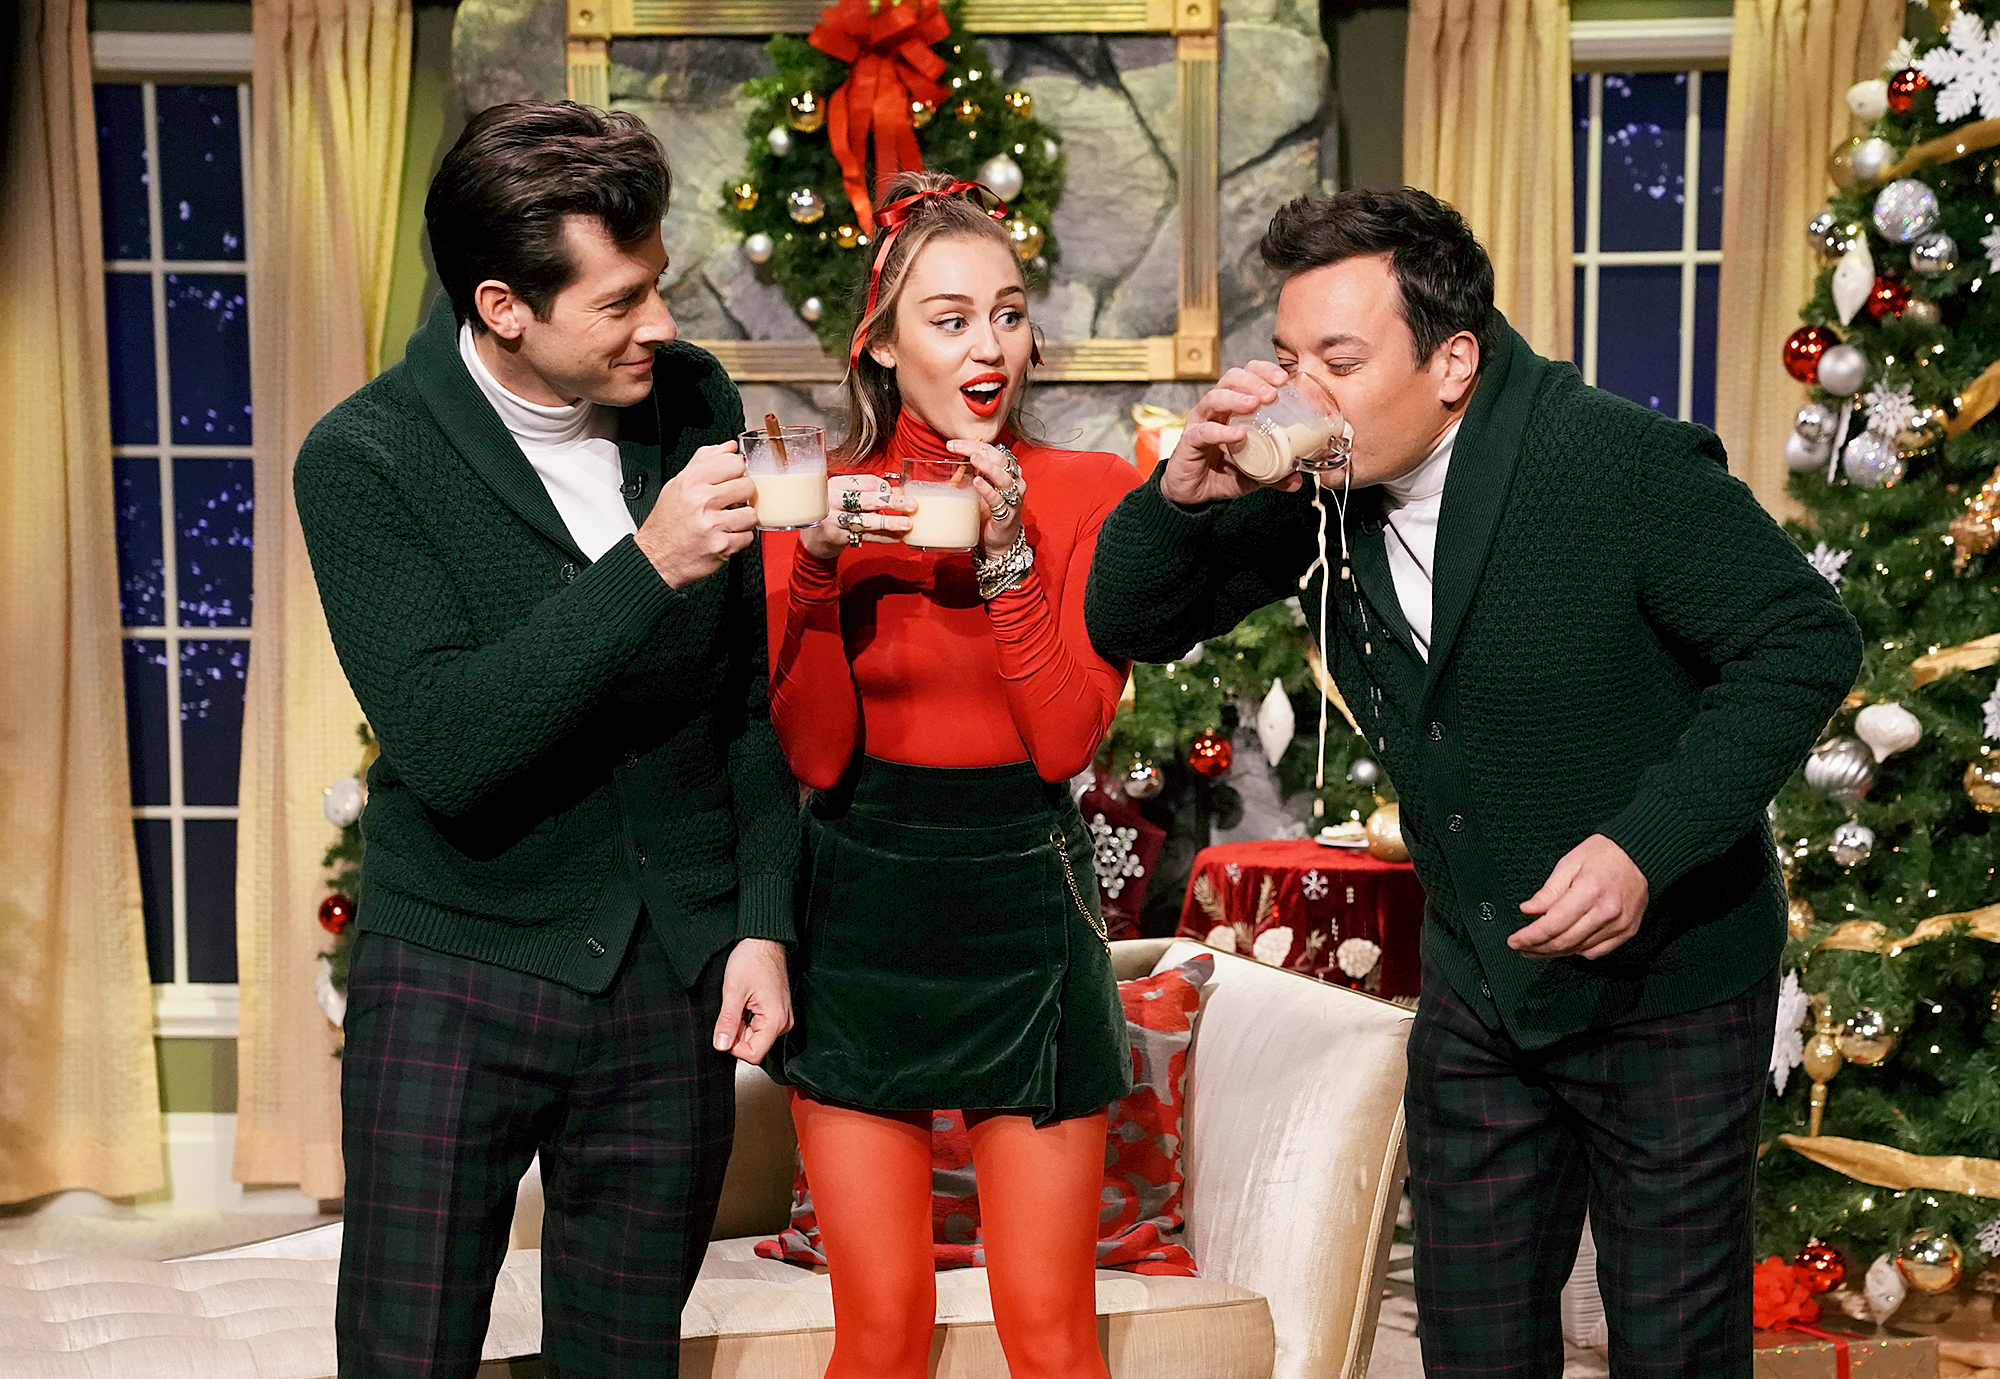 """mark-ronson-miley-cyrus-jimmy-fallon - THE TONIGHT SHOW STARRING JIMMY FALLON — Episode 0986 — Pictured: (l-r) Musician Mark Ronson, singer Miley Cyrus, and host Jimmy Fallon during """"Santa Baby"""" on December 20, 2018 — (Photo by: Andrew Lipovsky/NBC/NBCU Photobank)"""